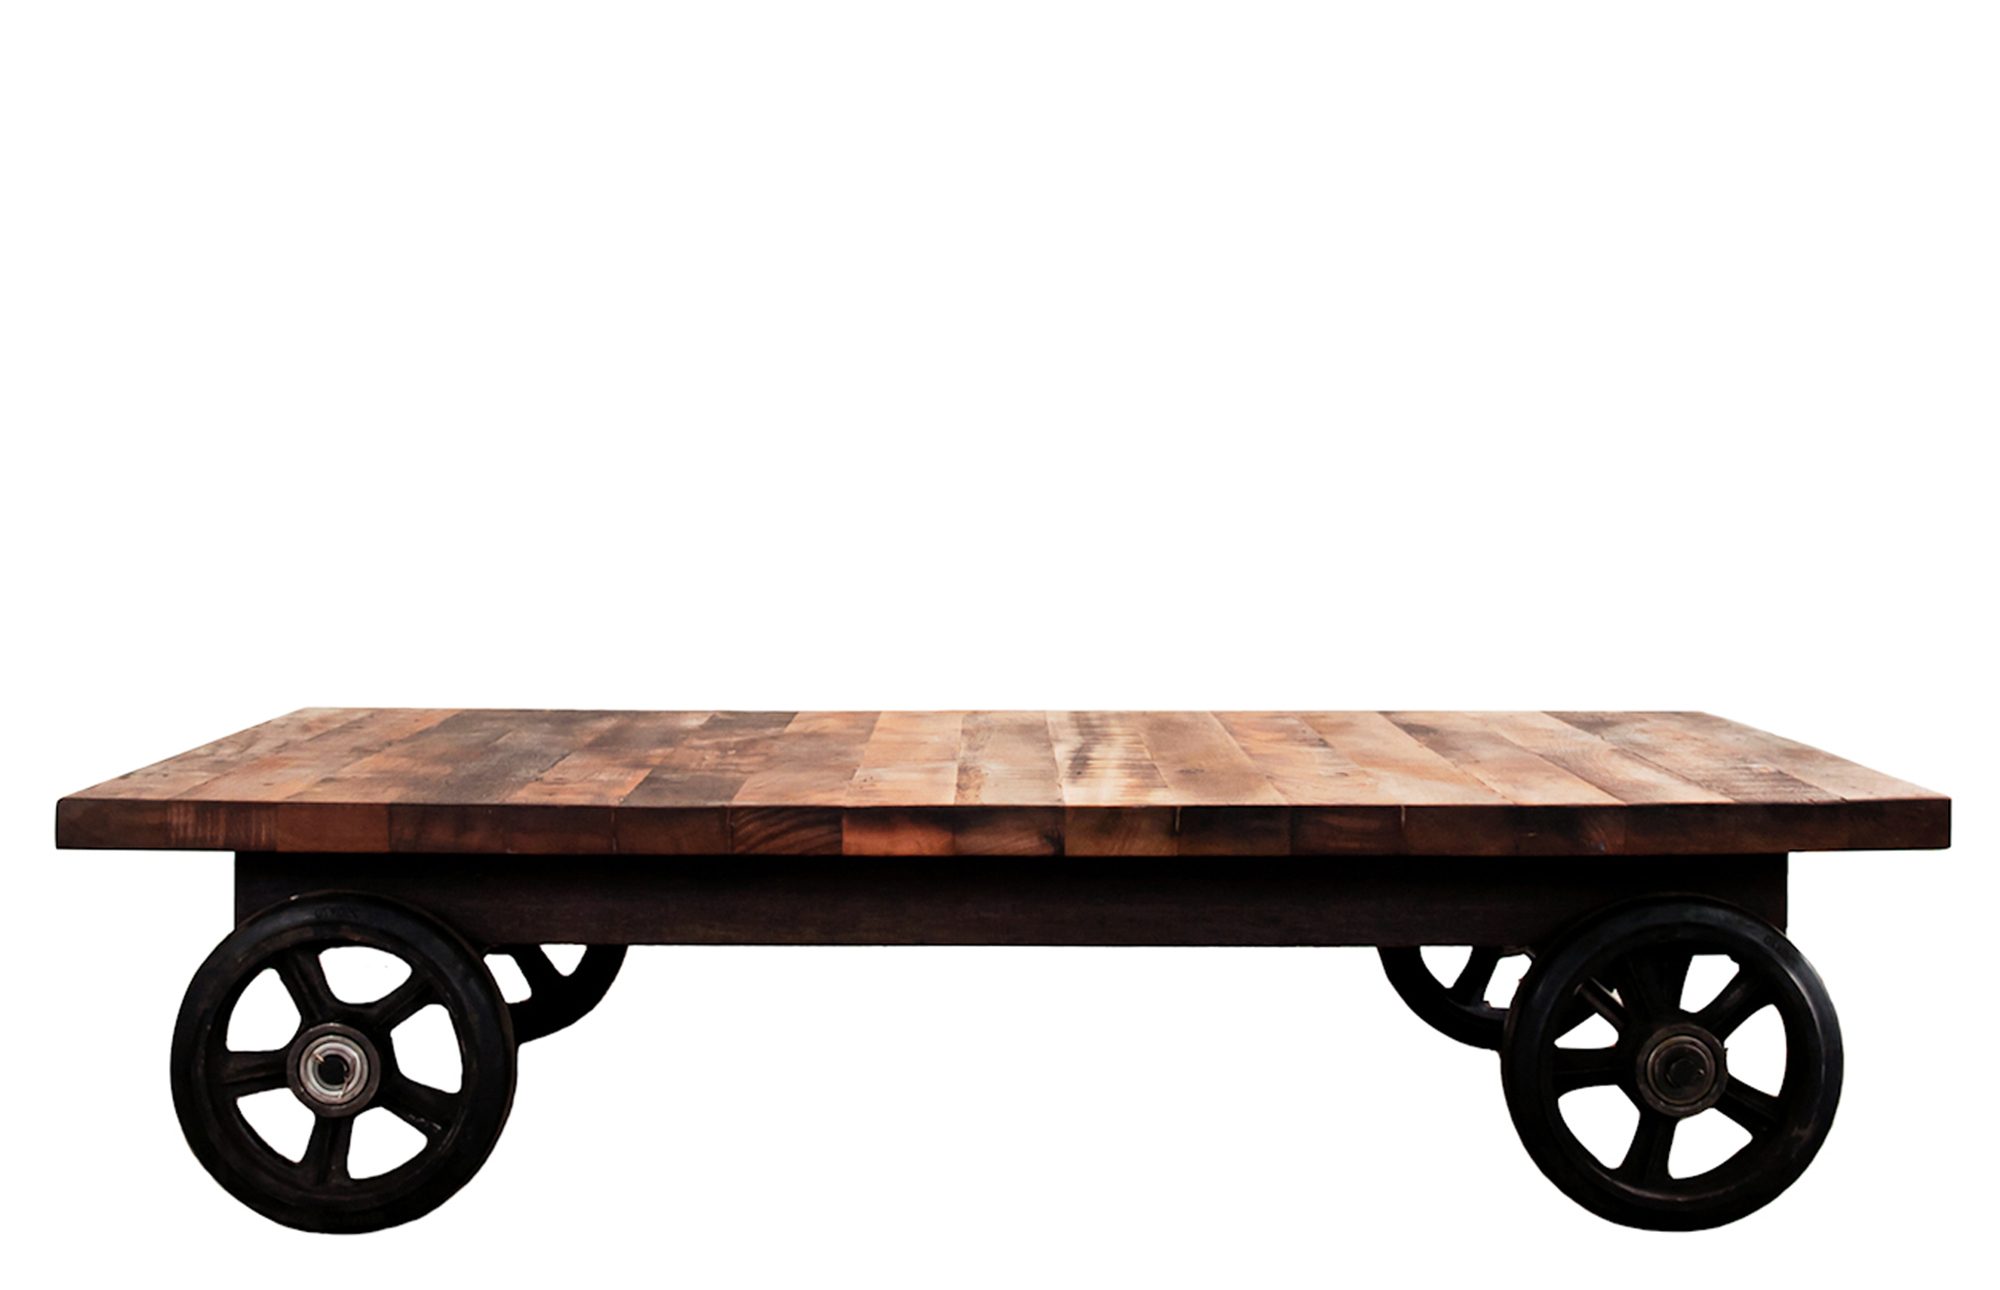 Preferred Coffee Table With Wheels – Lounge Furniture – Out & Out Original Pertaining To Iron Wood Coffee Tables With Wheels (View 18 of 20)